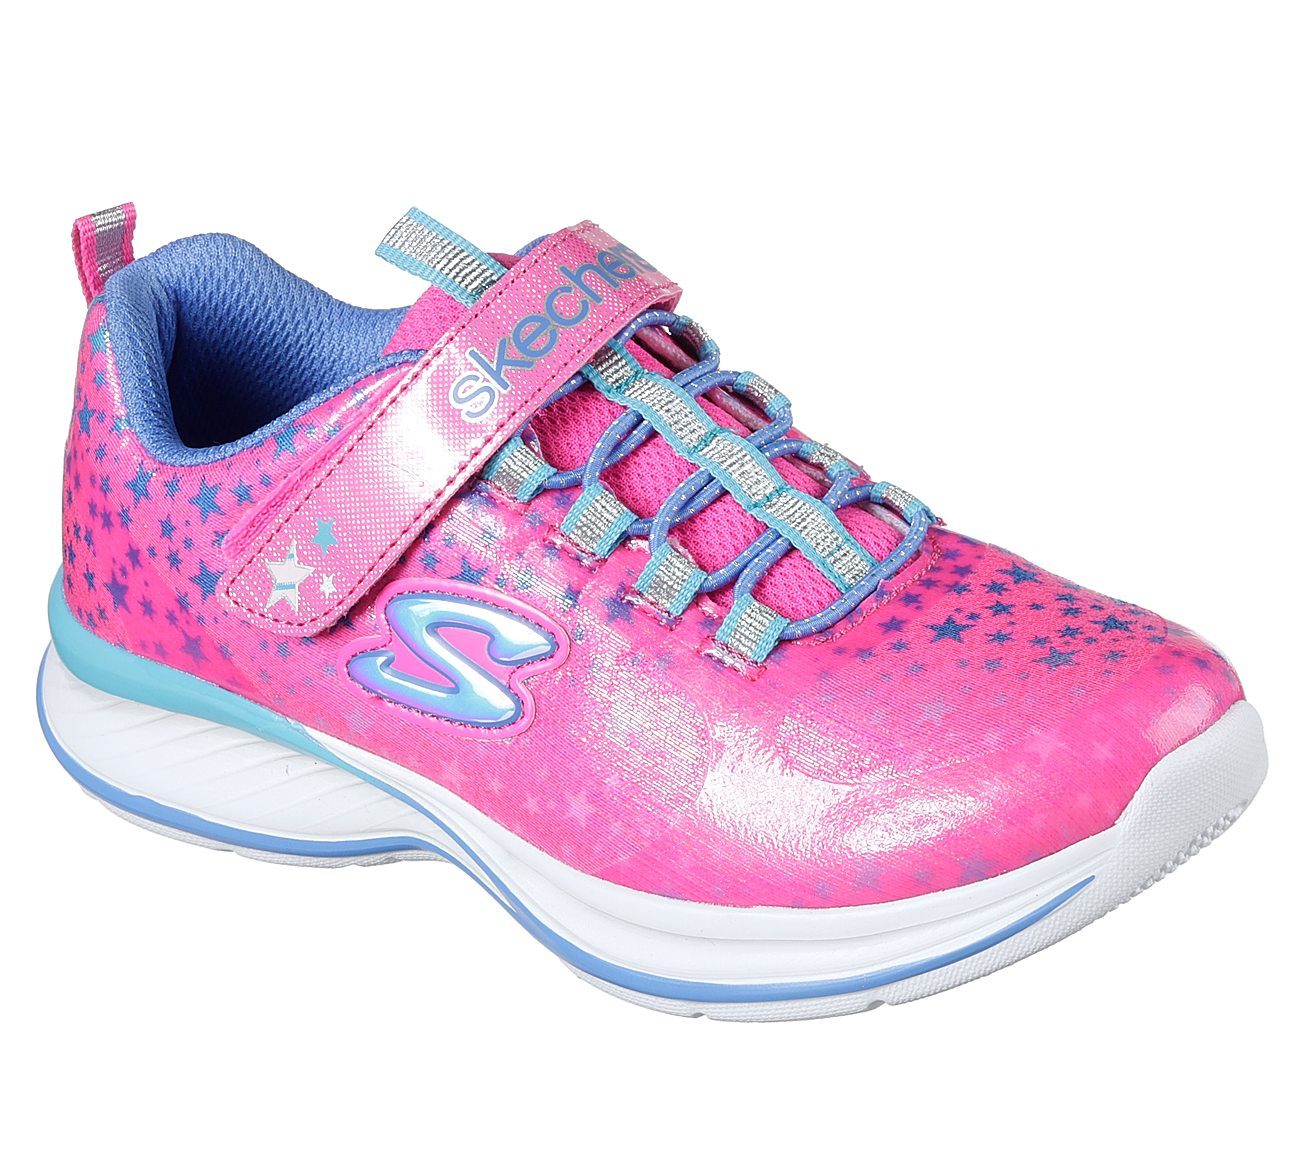 7ad5bb5da675 Buy SKECHERS Jumpin Jams - Cosmic Cutie Sport Shoes only  55.00